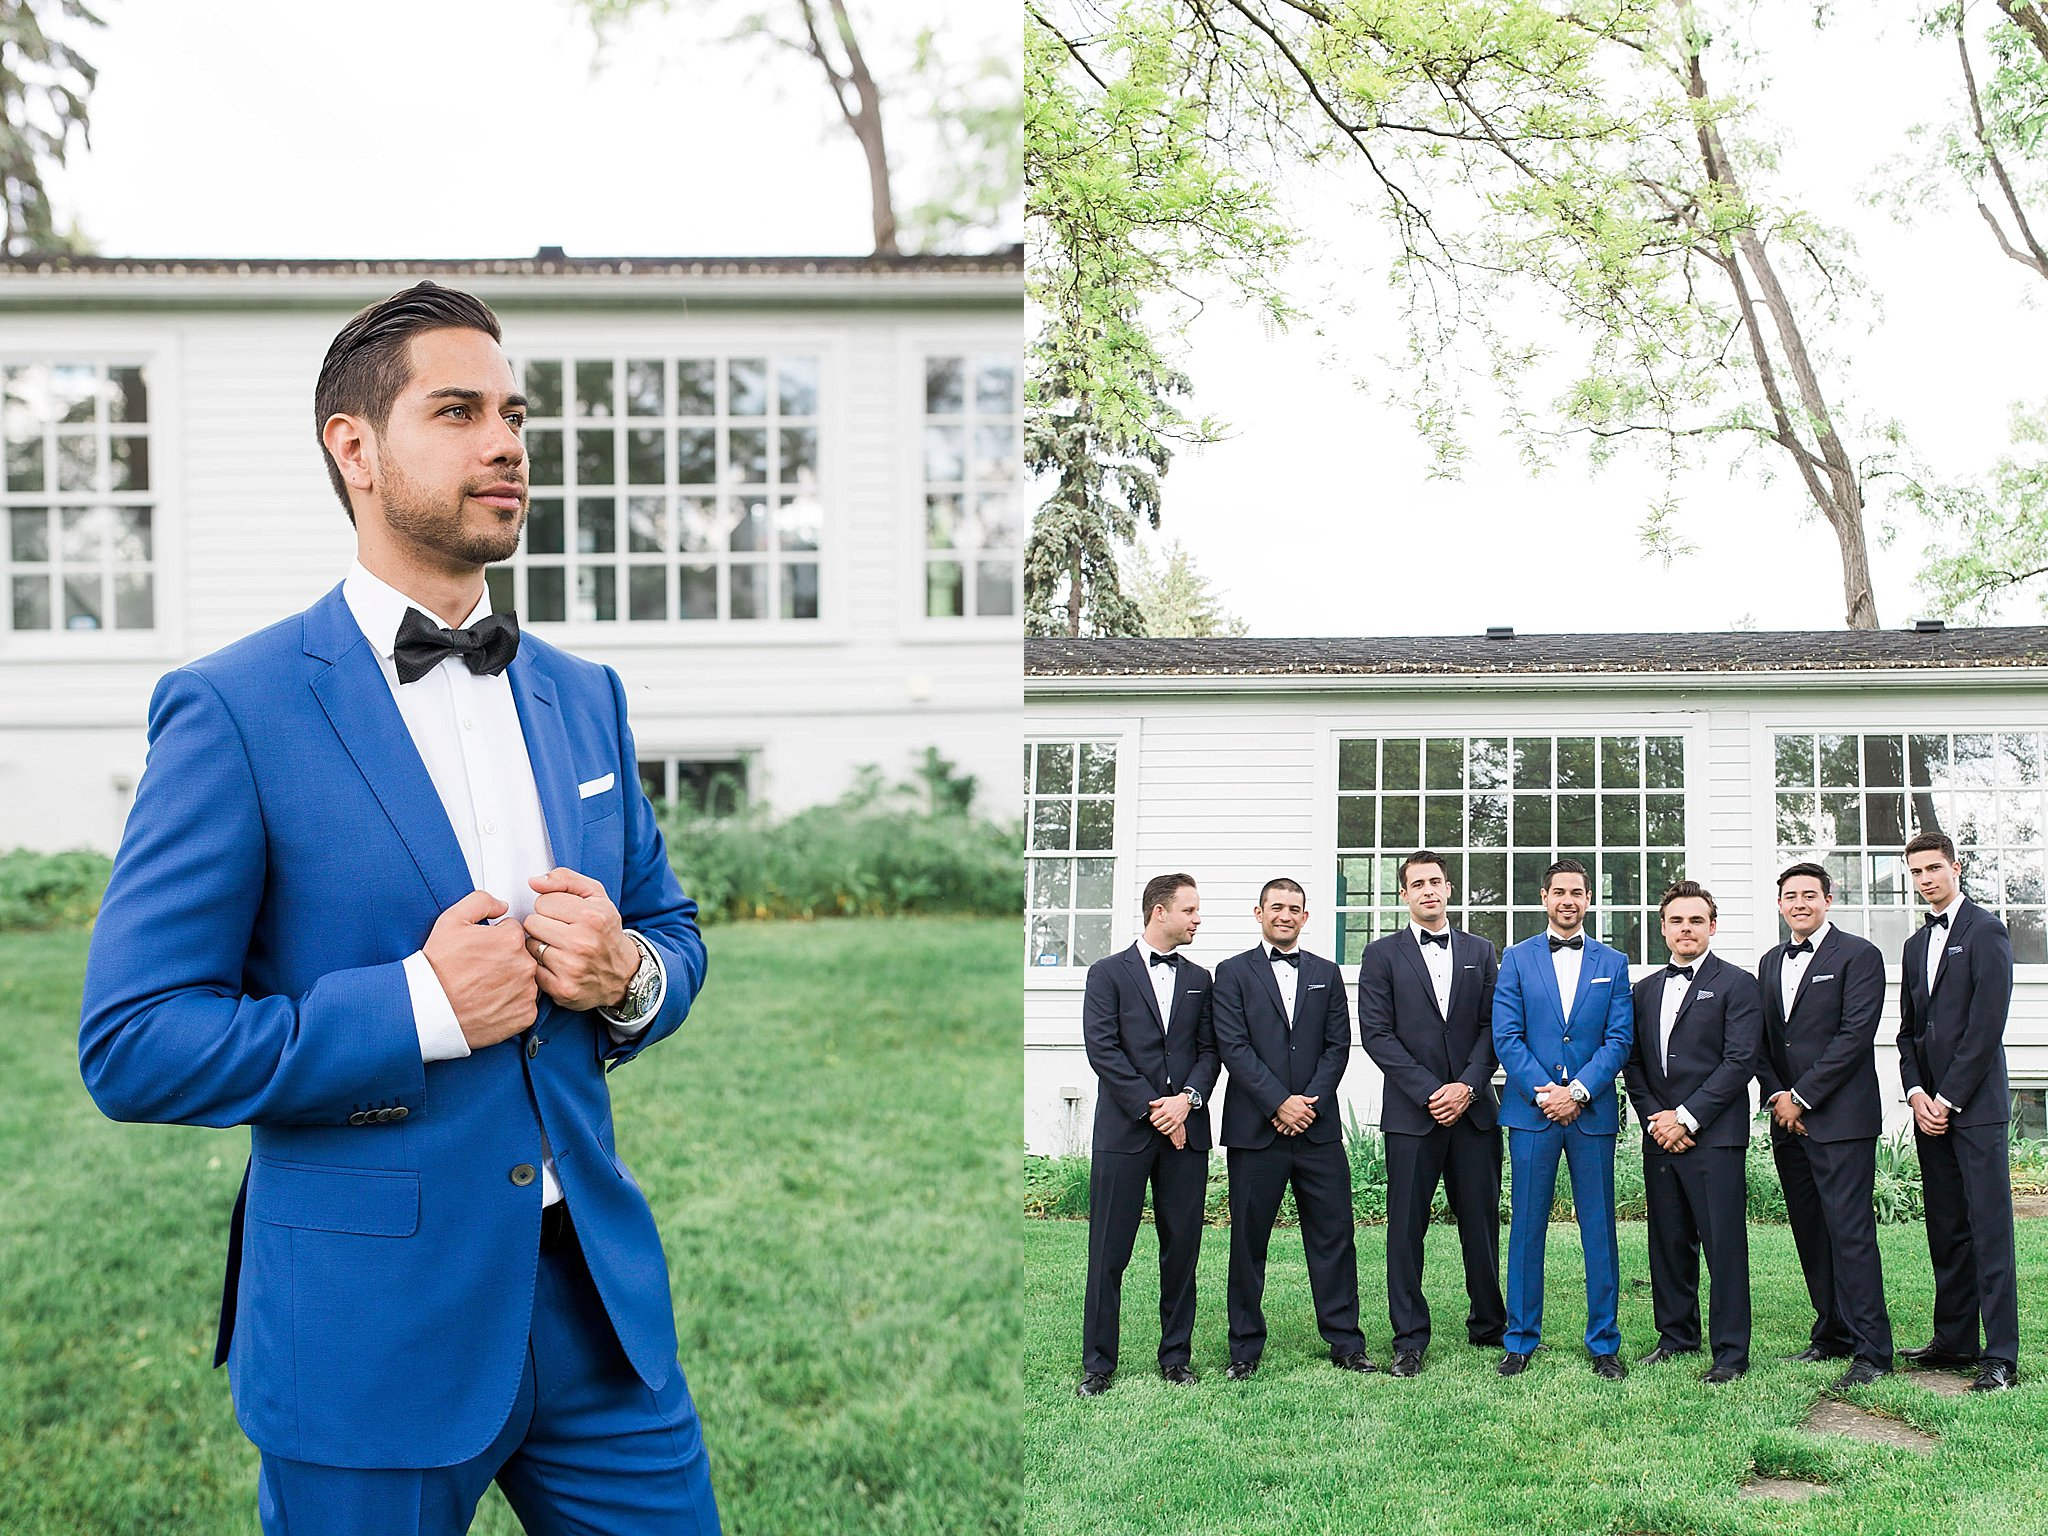 Doctors House Wedding, Film Photographer, Toronto wedding Photographer